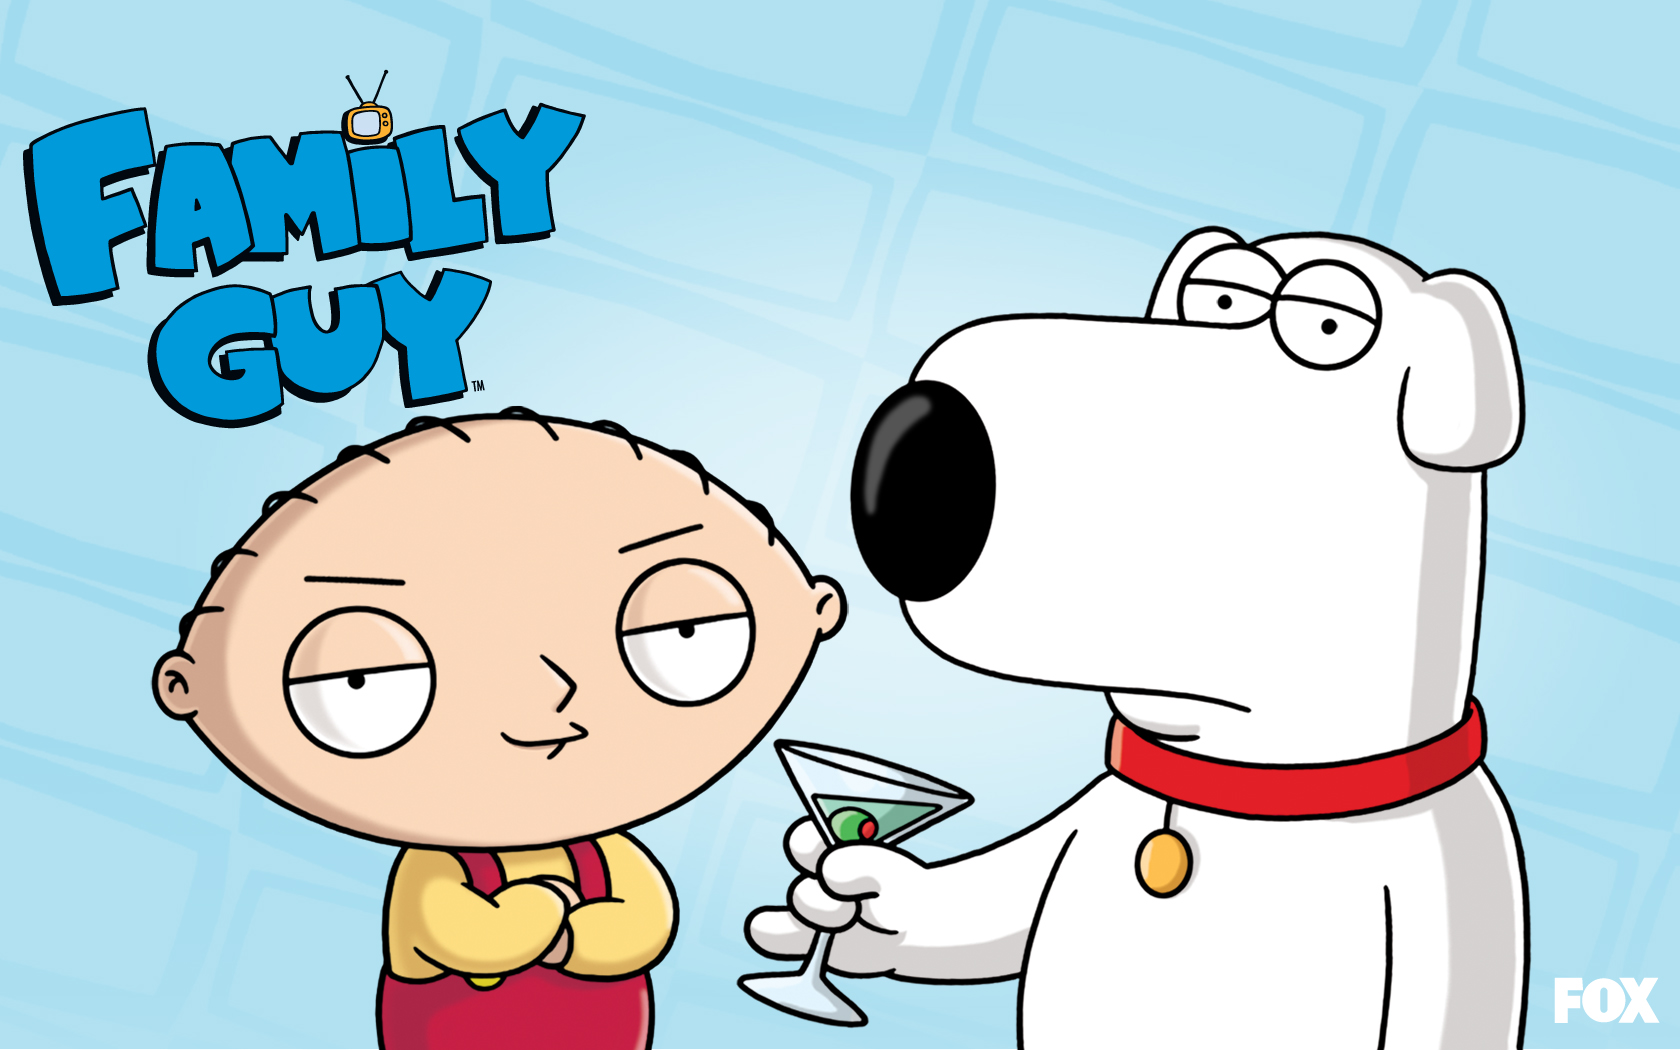 Stewie Brian The Family Guy Wallpaper 1680x1050 pixel Army HD 1680x1050